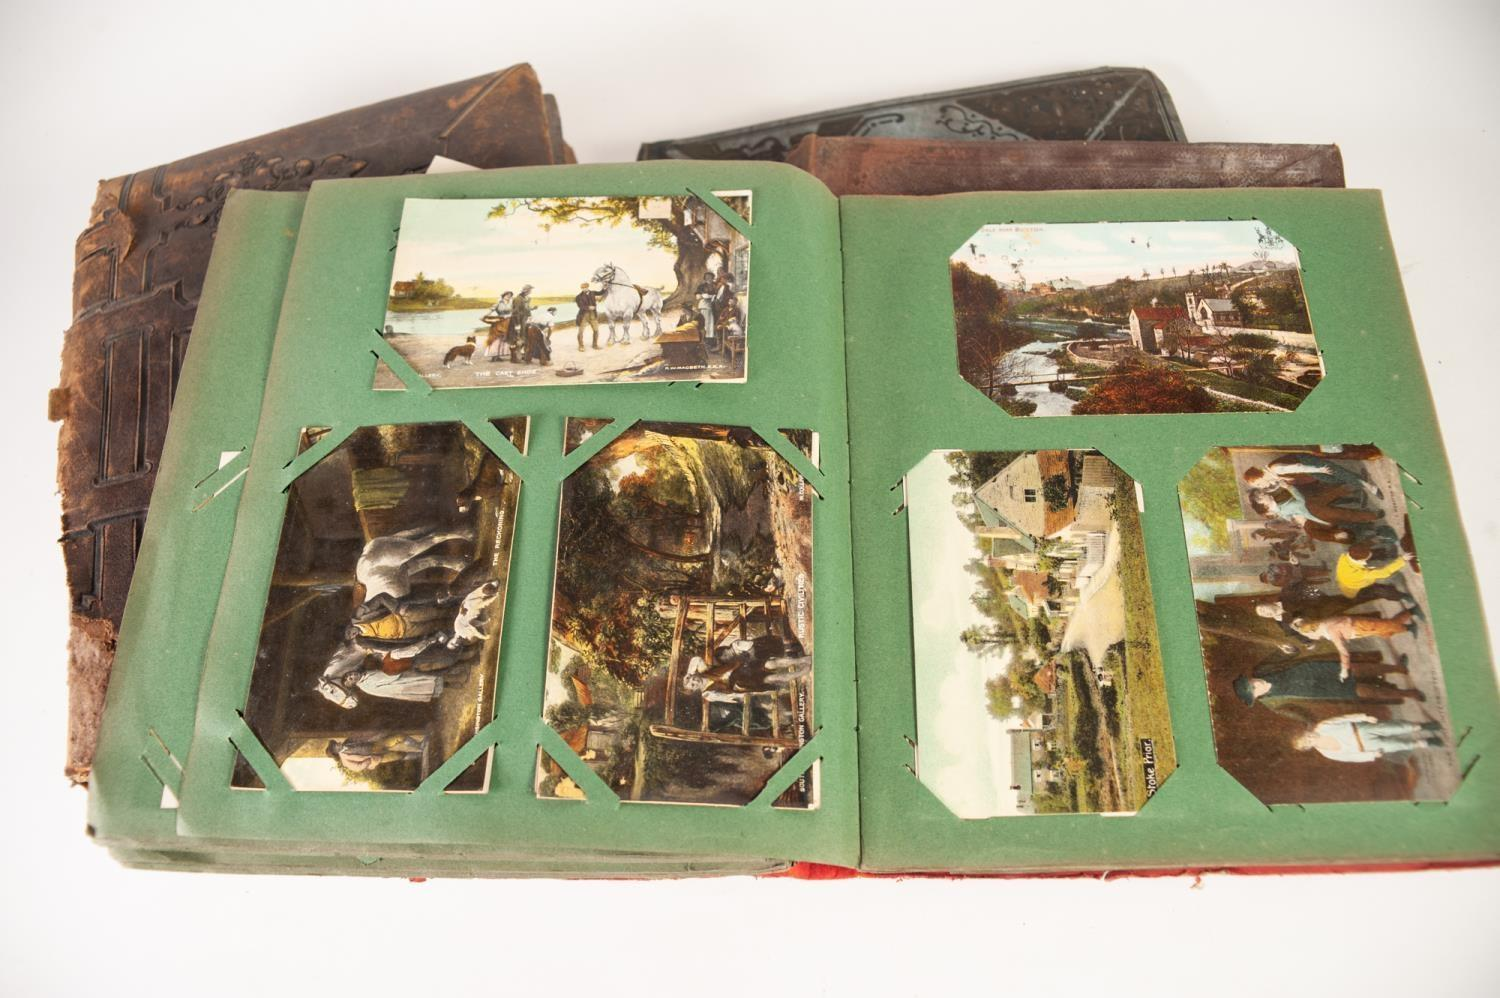 Lot 174 - LATE VICTORIAN ALBUM OF SCRAPS, together with an ALBUM OF EARLY TWENTIETH CENTURY POSTCARDS mainly